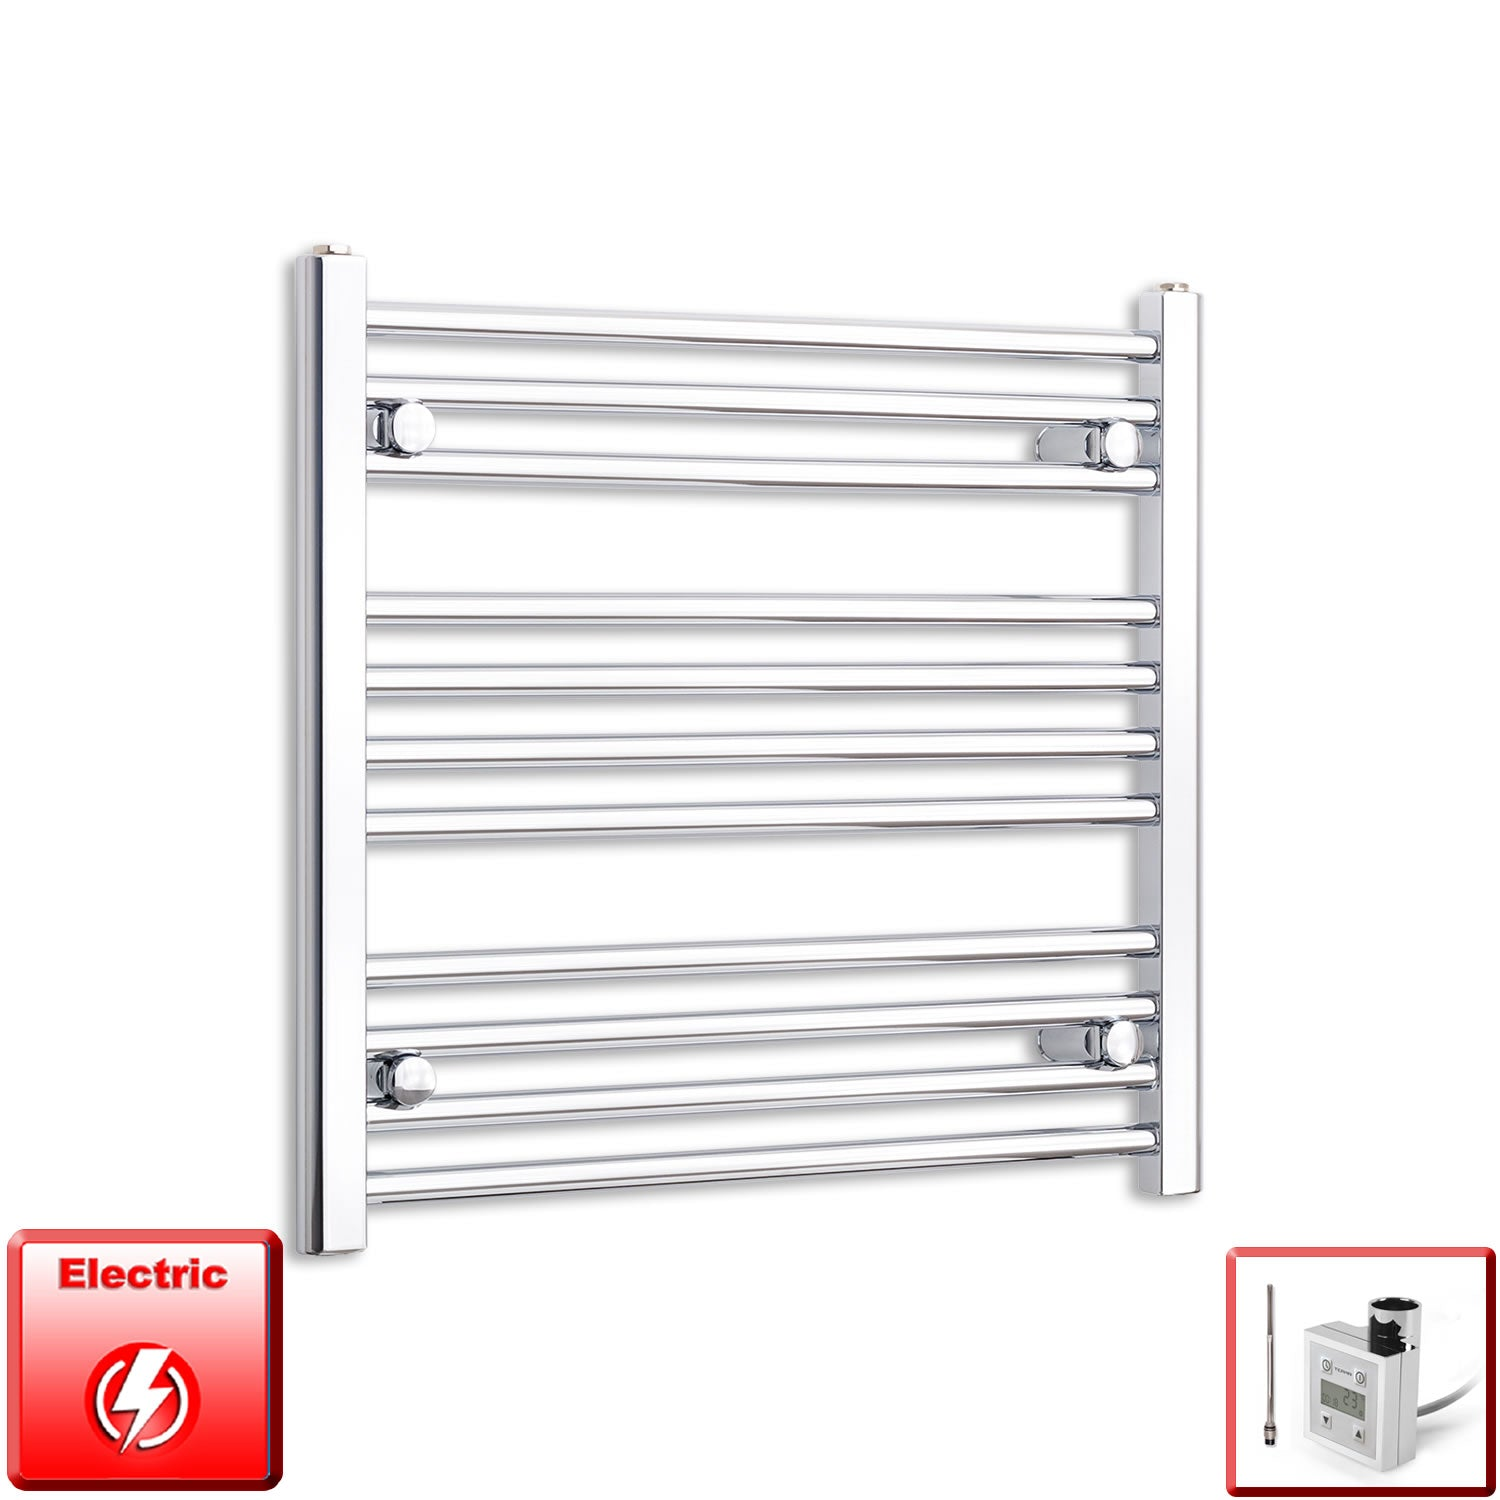 700mm Wide 600mm High Flat Or Curved Chrome Pre-Filled Electric Heated Towel Rail Radiator HTR,KTX-3 Thermostatic Element / Straight